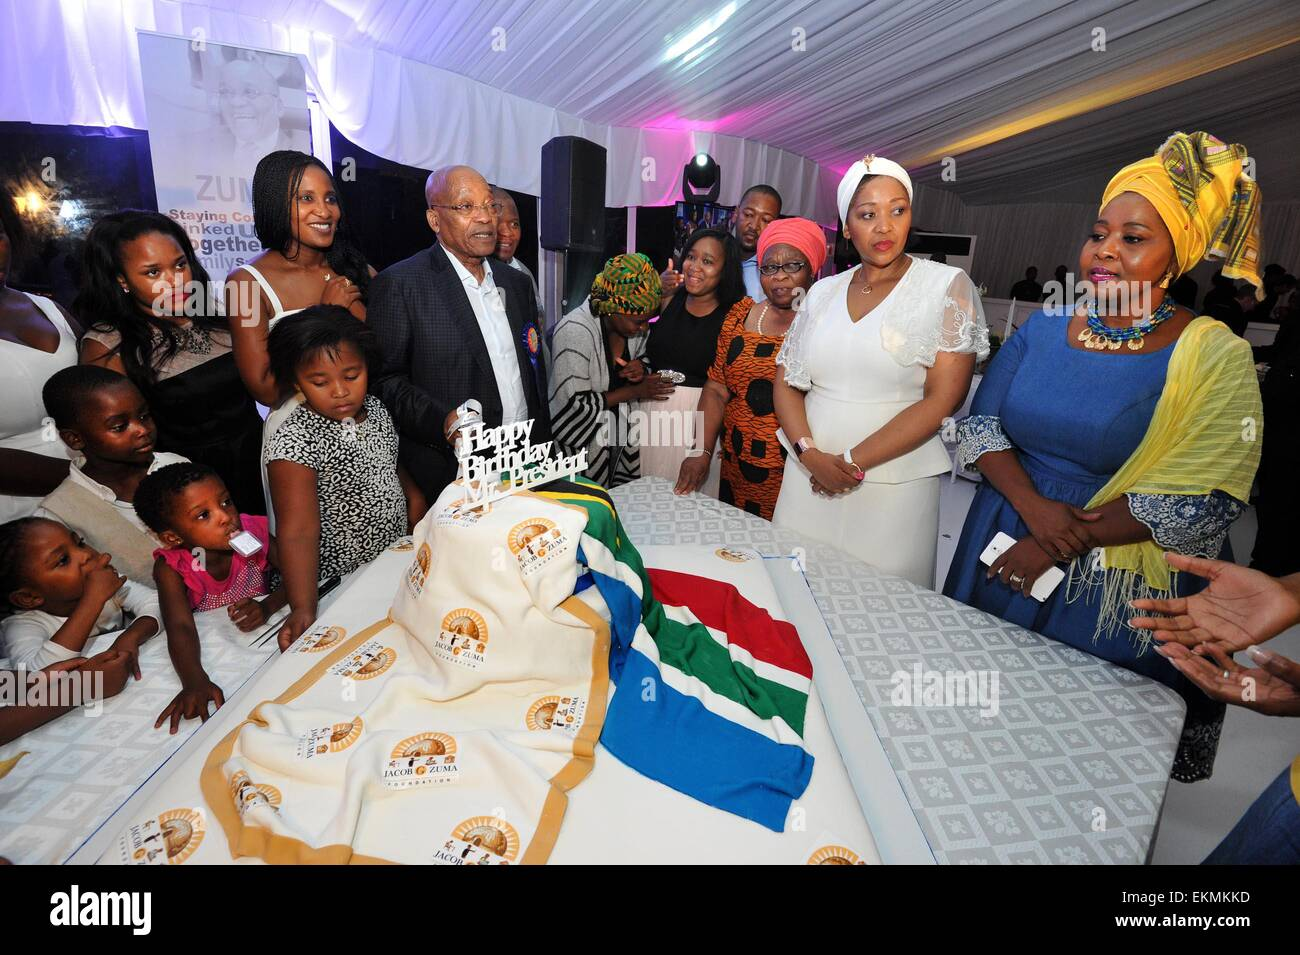 Durban, South Africa. 12th Apr, 2015. South Africa's President Jacob Zuma (C) tries to cut the birthday cake - Stock Image